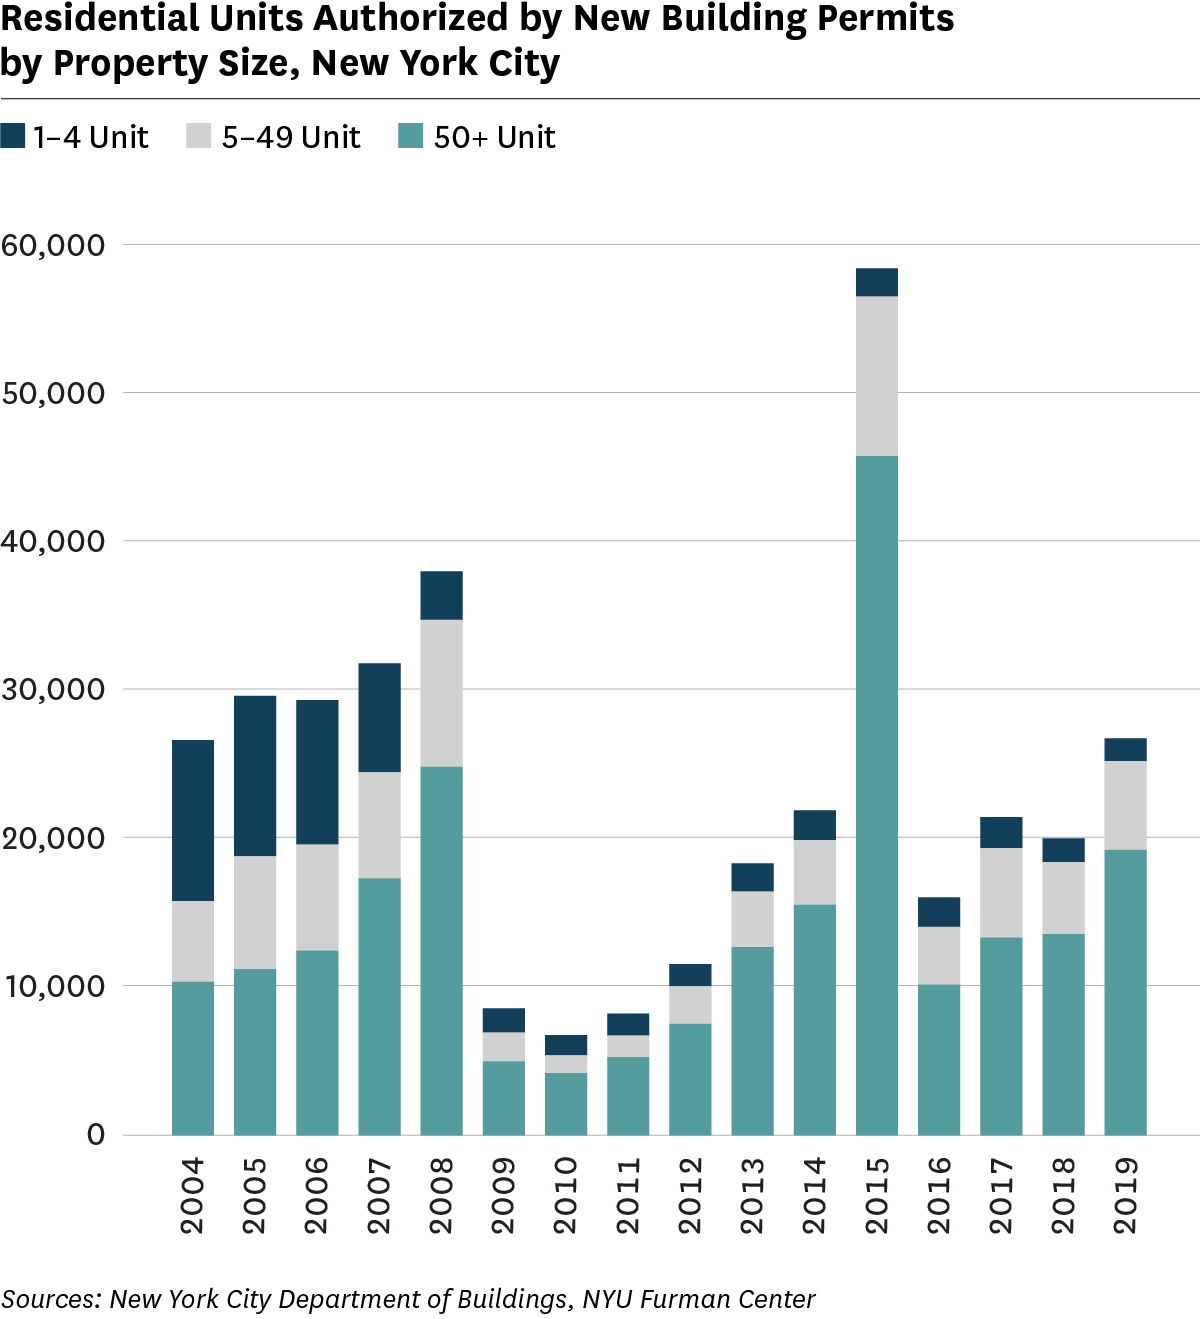 Bar graph showing authorized residential unit by new building permits by property size, 2004 to 2019